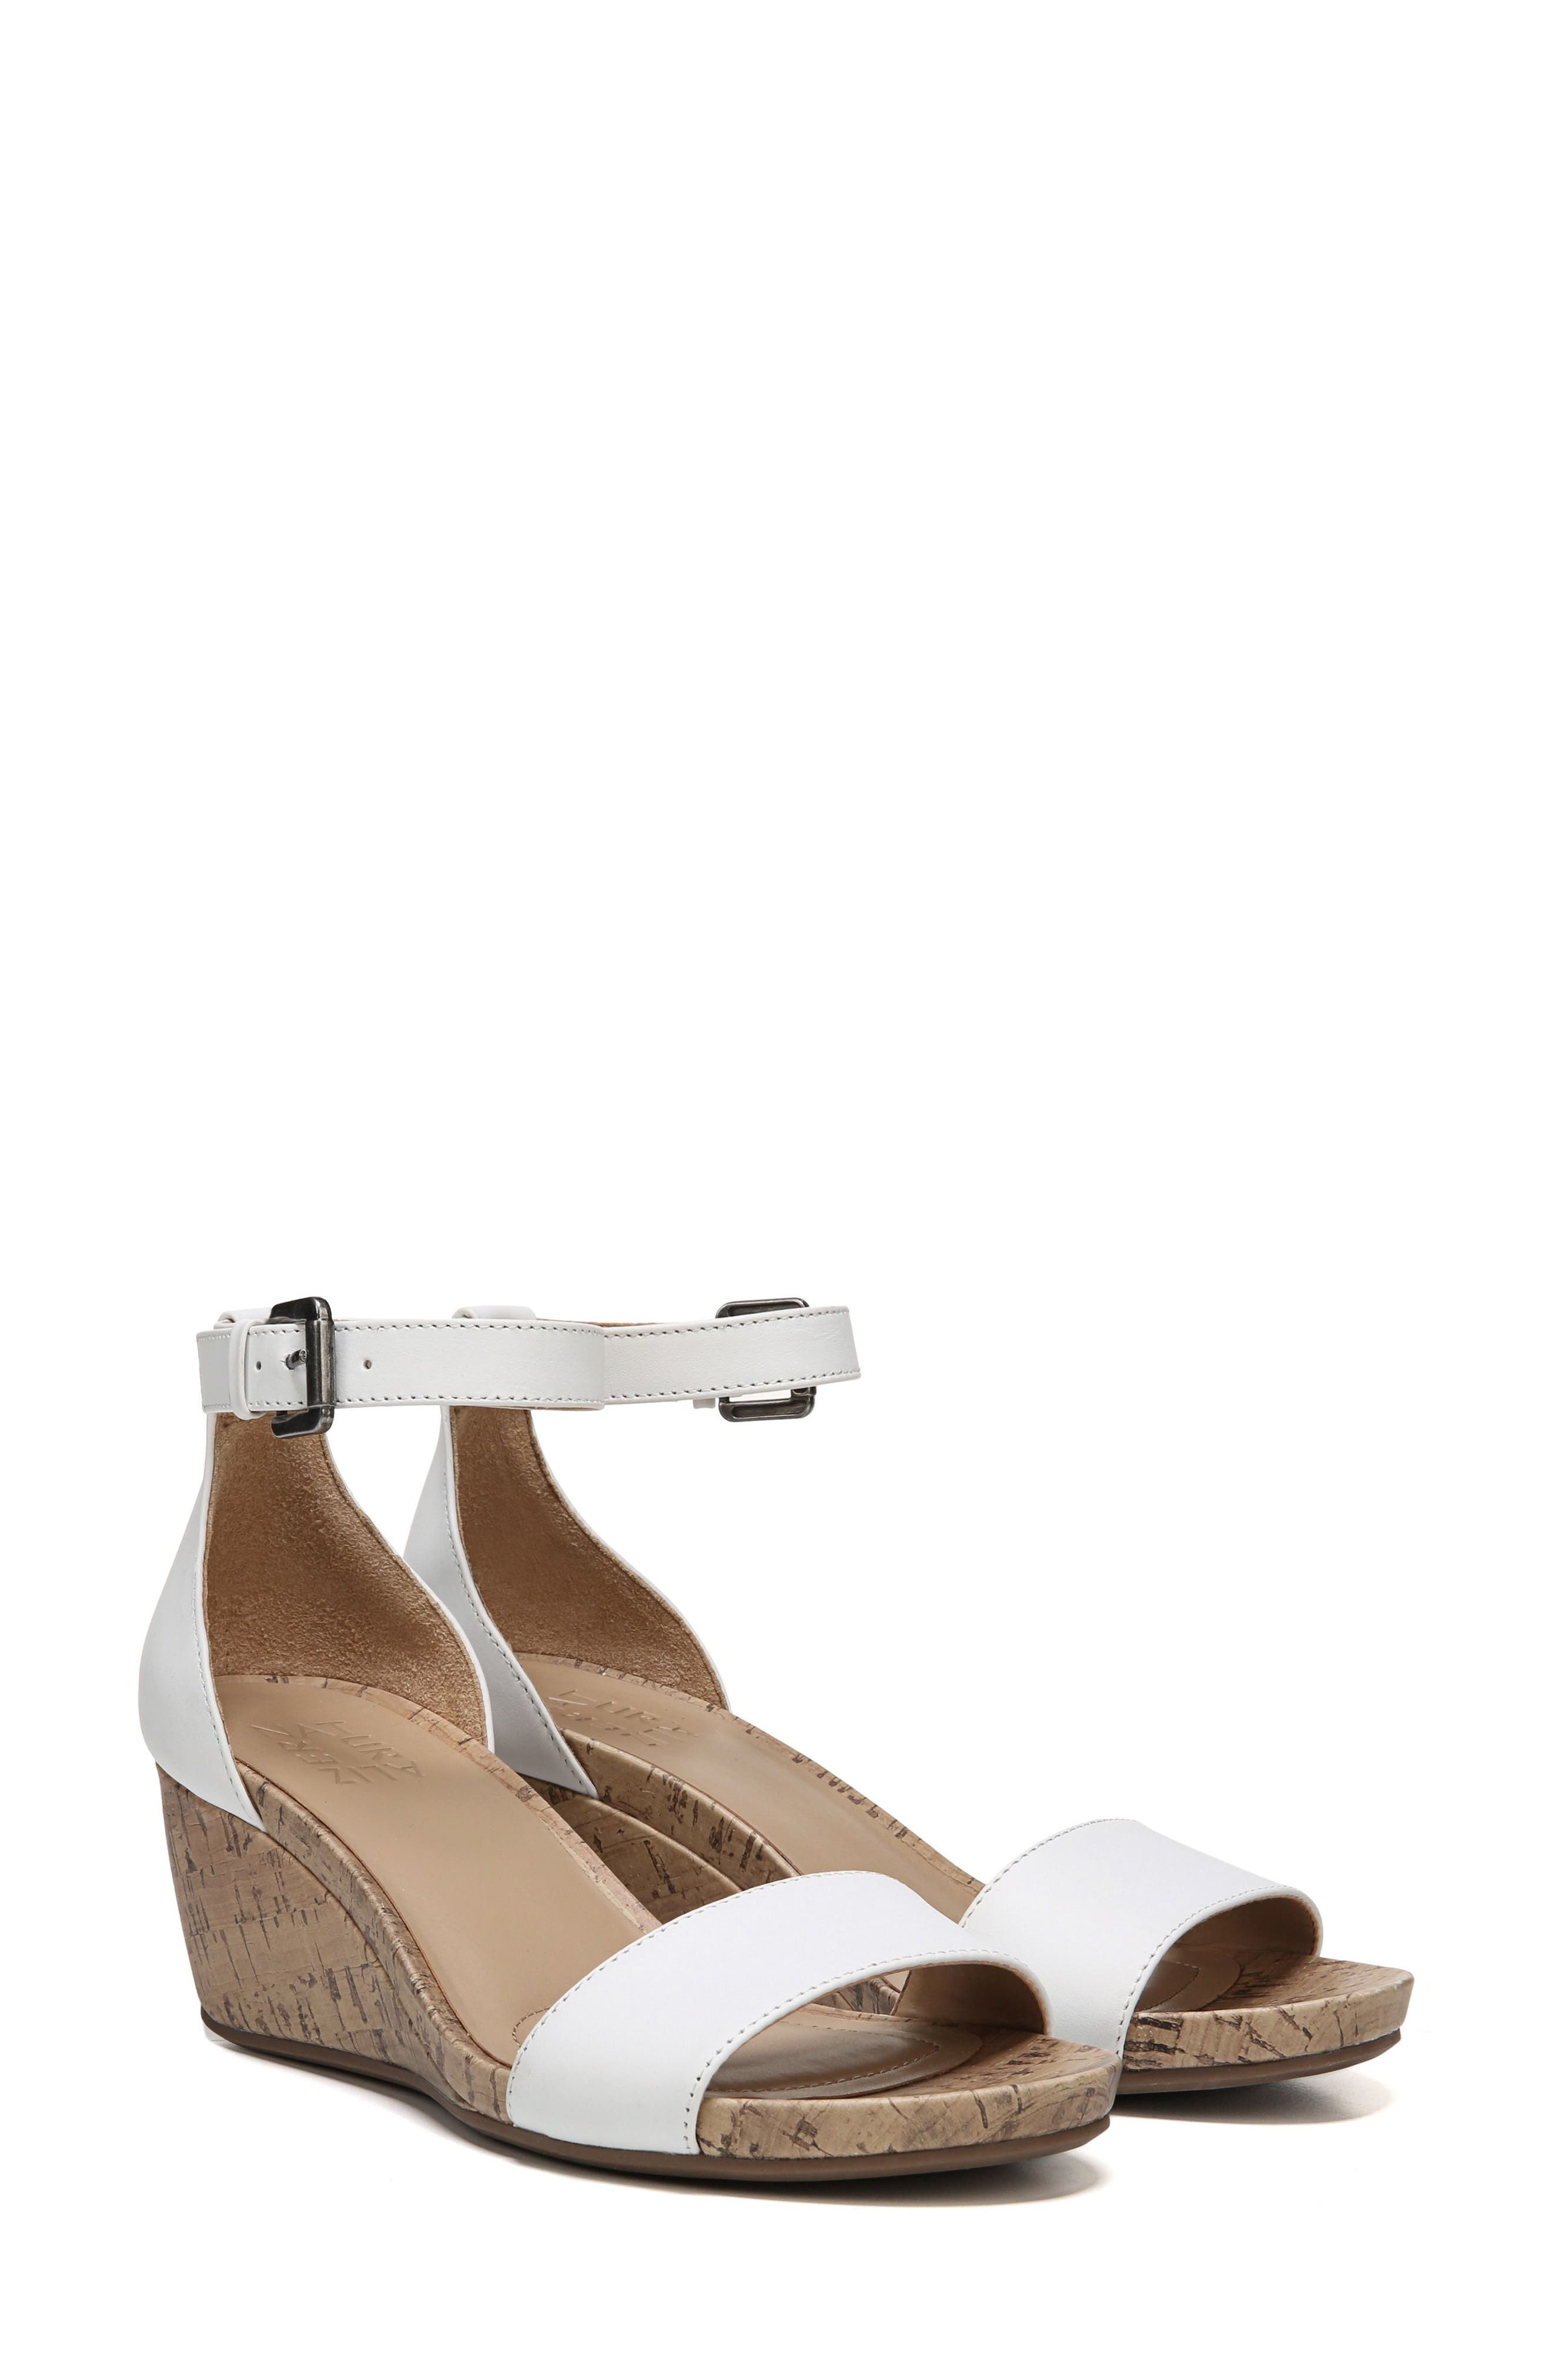 Cami Wedge Sandal,                         Main,                         color, WHITE LEATHER